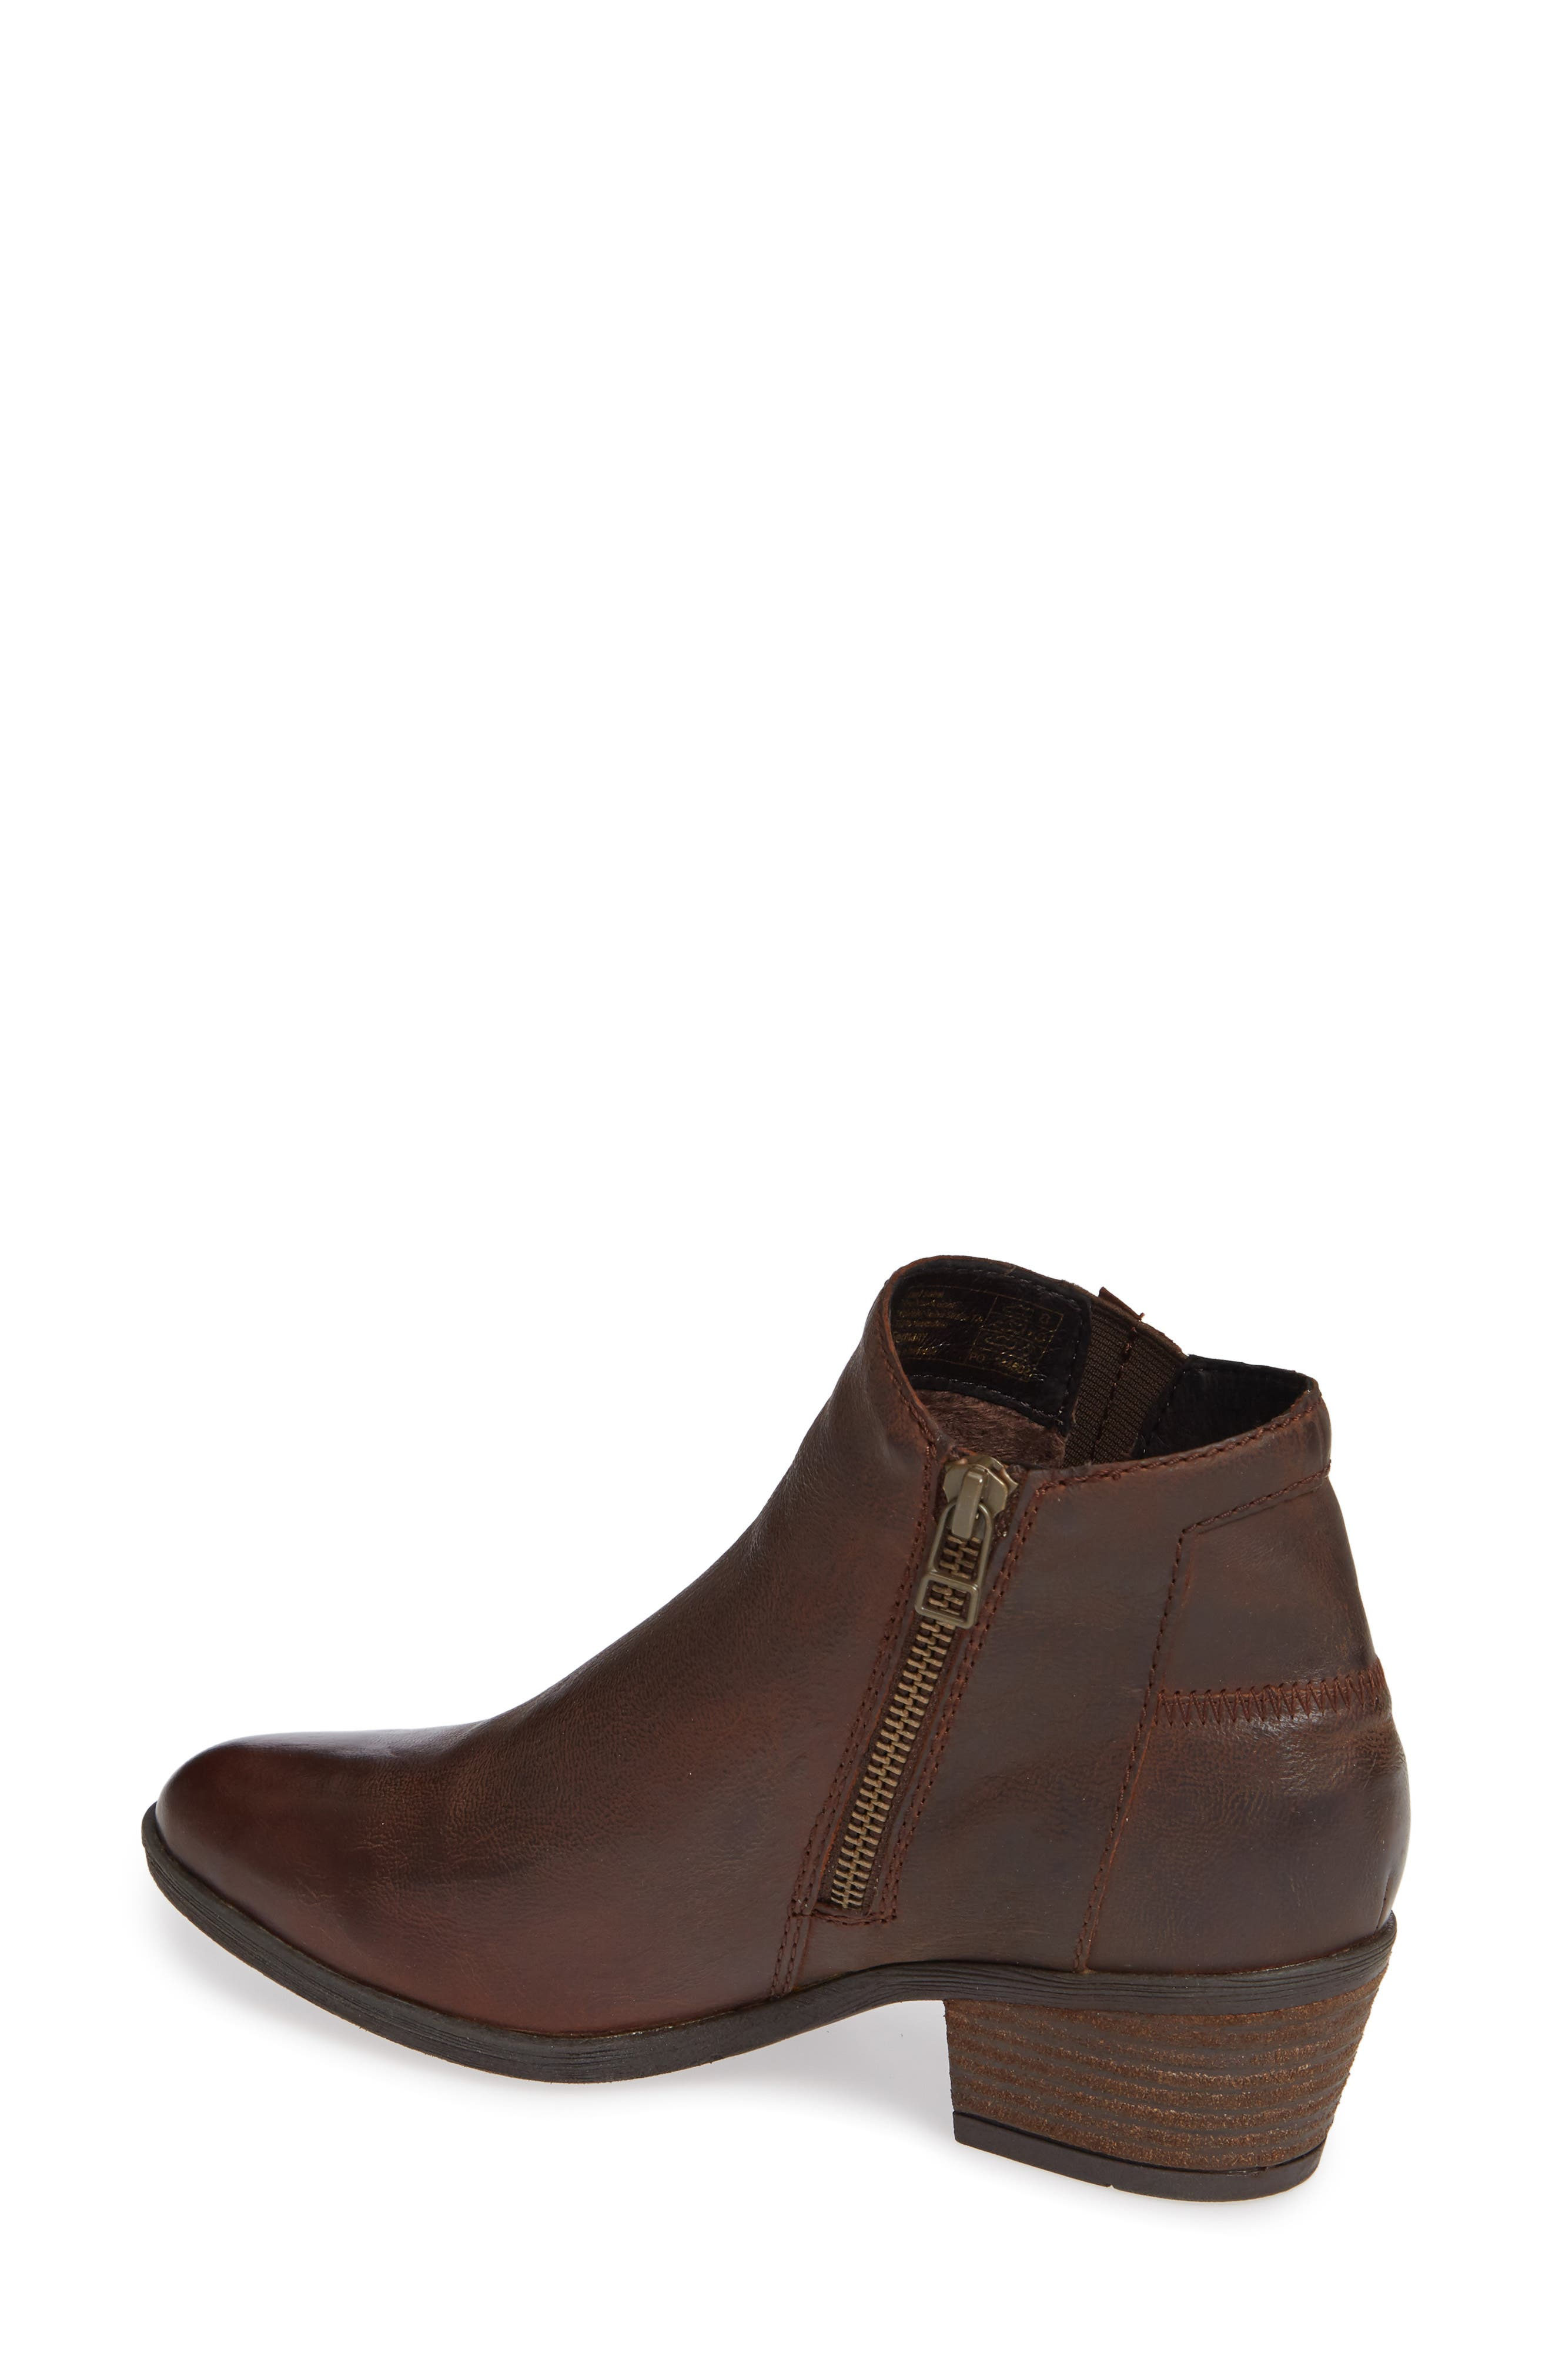 JOSEF SEIBEL,                             Daphne Bootie,                             Alternate thumbnail 2, color,                             MORO WASHED LEATHER